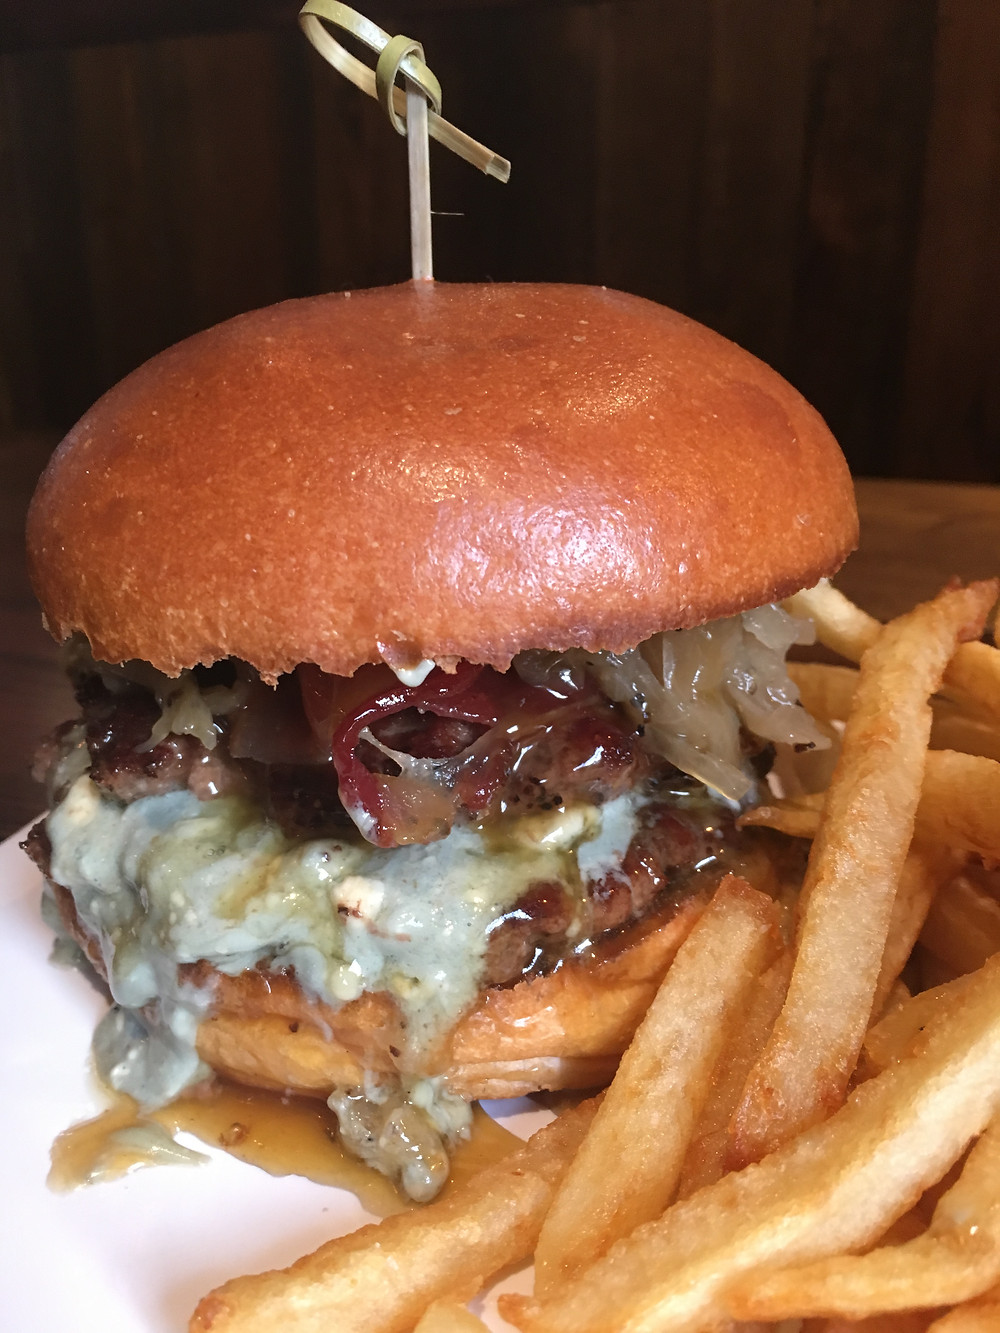 Hilltop Park Alehouse already has a few burgers that have become favorites, like the namesake Hilltop